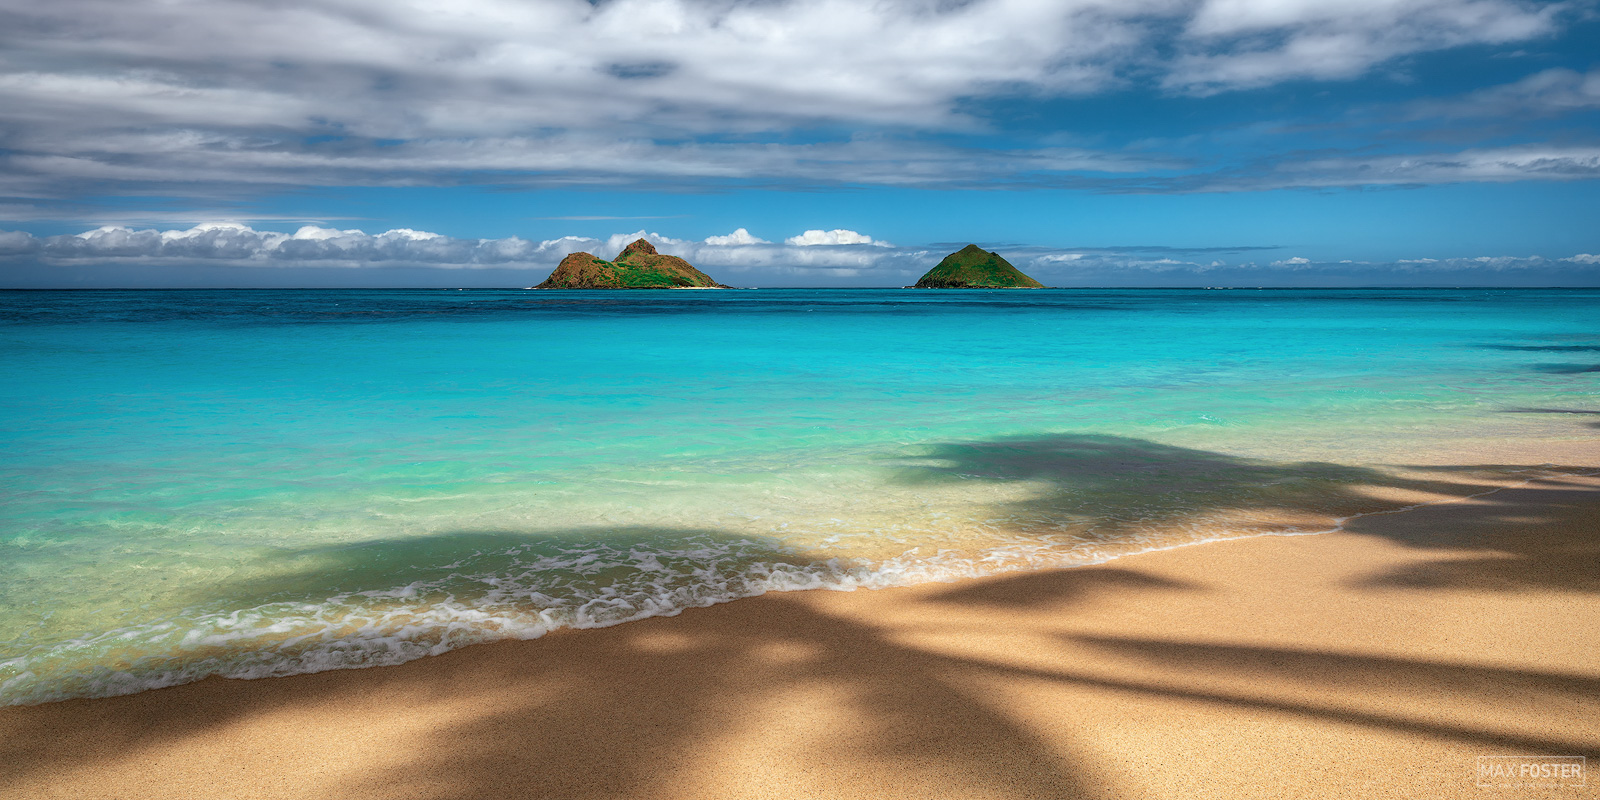 Fine Art Limited Edition of 100 The panoramic format version of Palm Trees & Daydreams, taken at Lanikai Beach in Oahu, Hawaii...